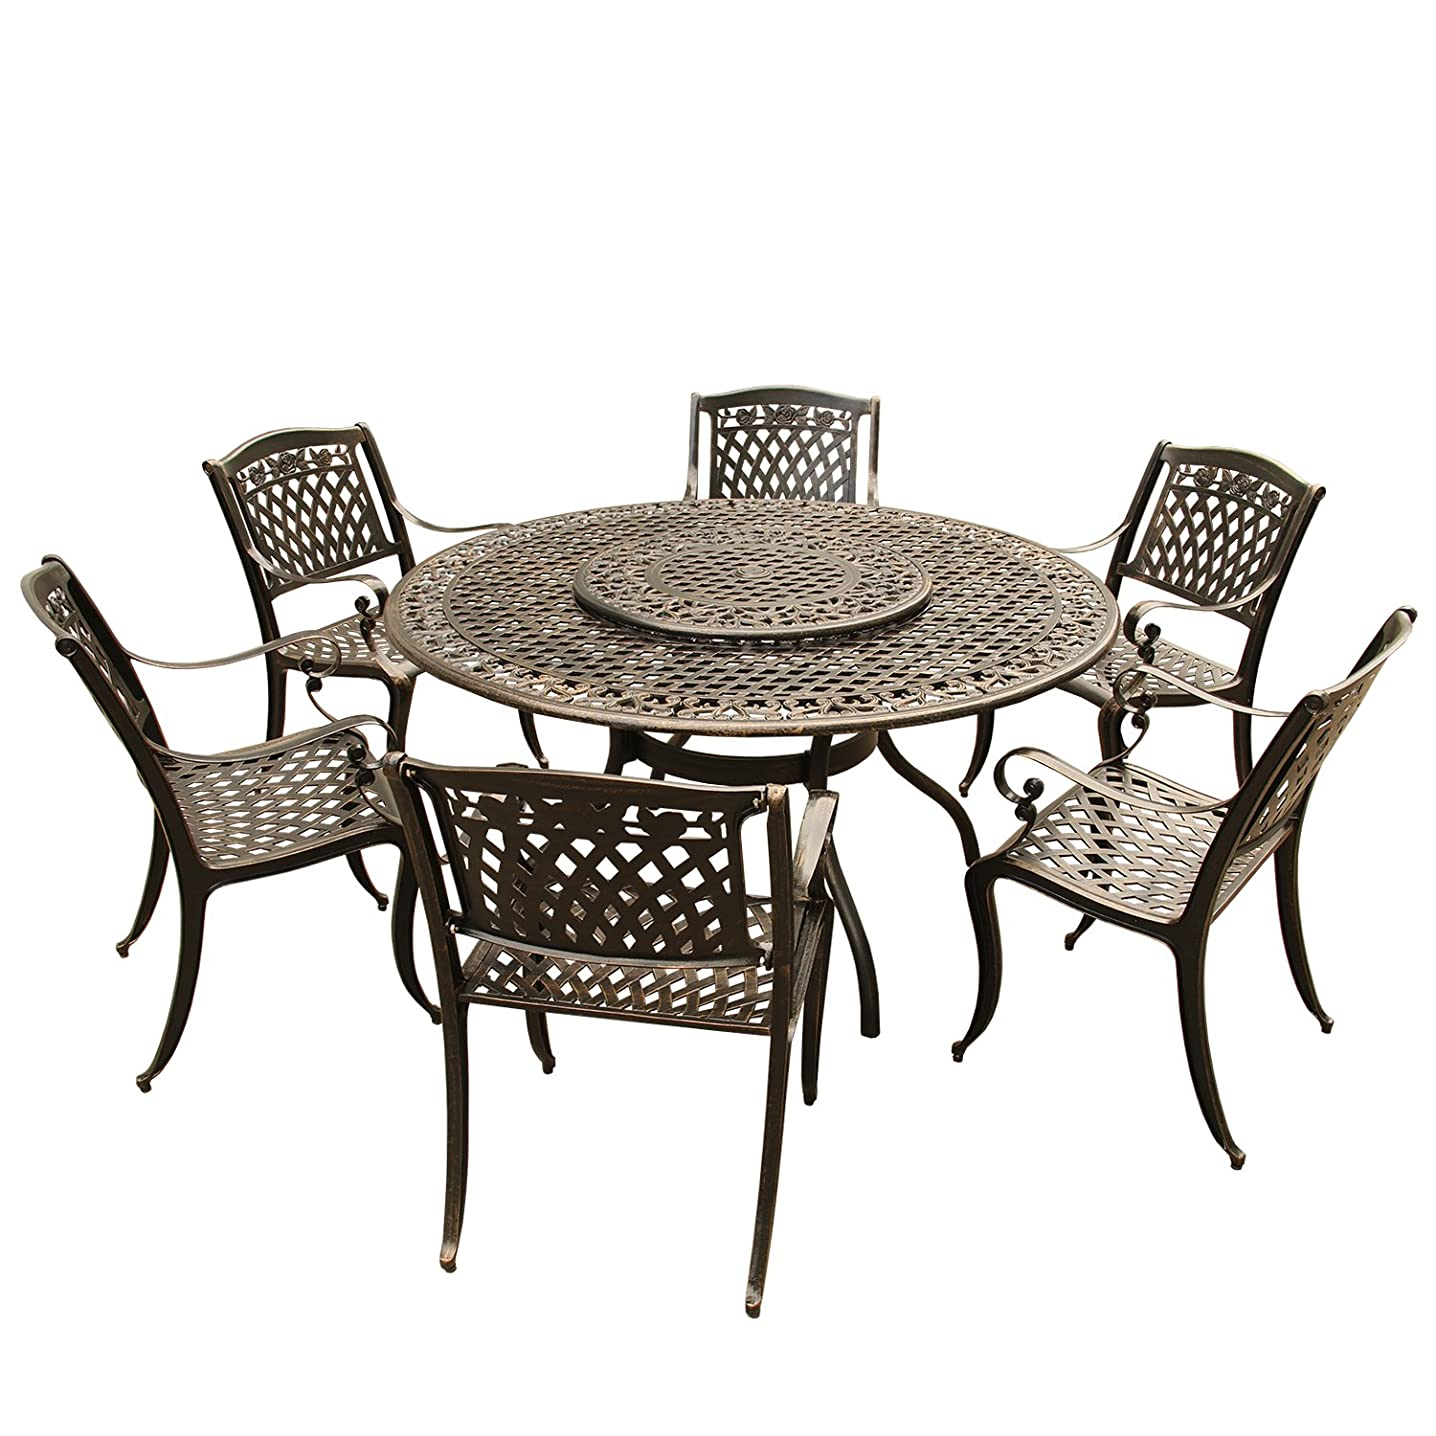 Oakland Living AZ2555-1855(6)-BZ Outdoor Aluminum Dining Set, Bronze